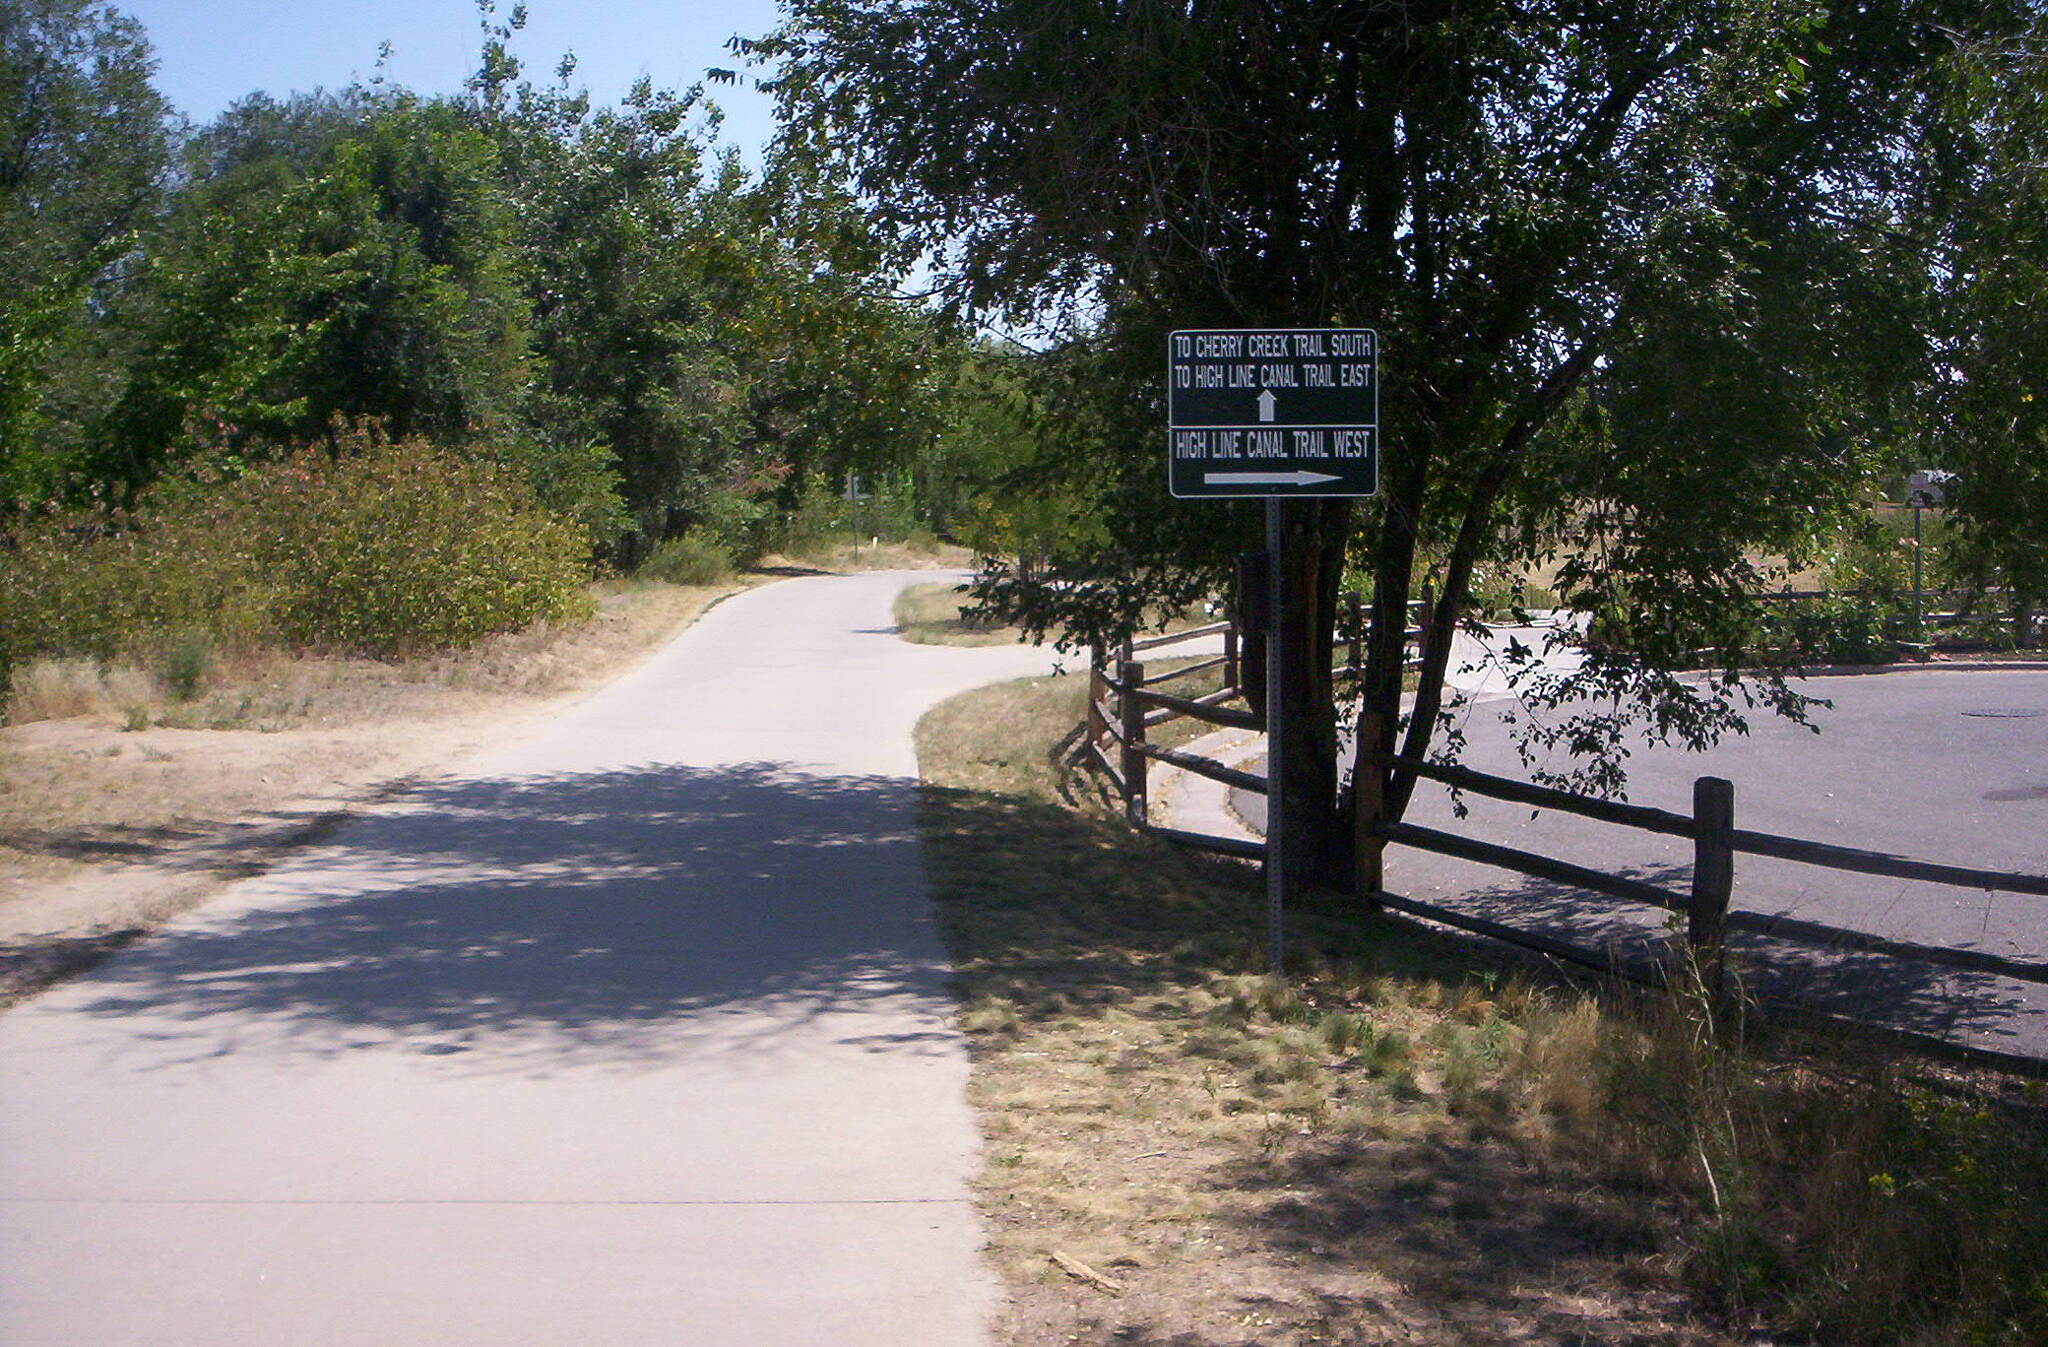 Cherry Creek Regional Trail Merge Intersection with High Line Canal trail west.